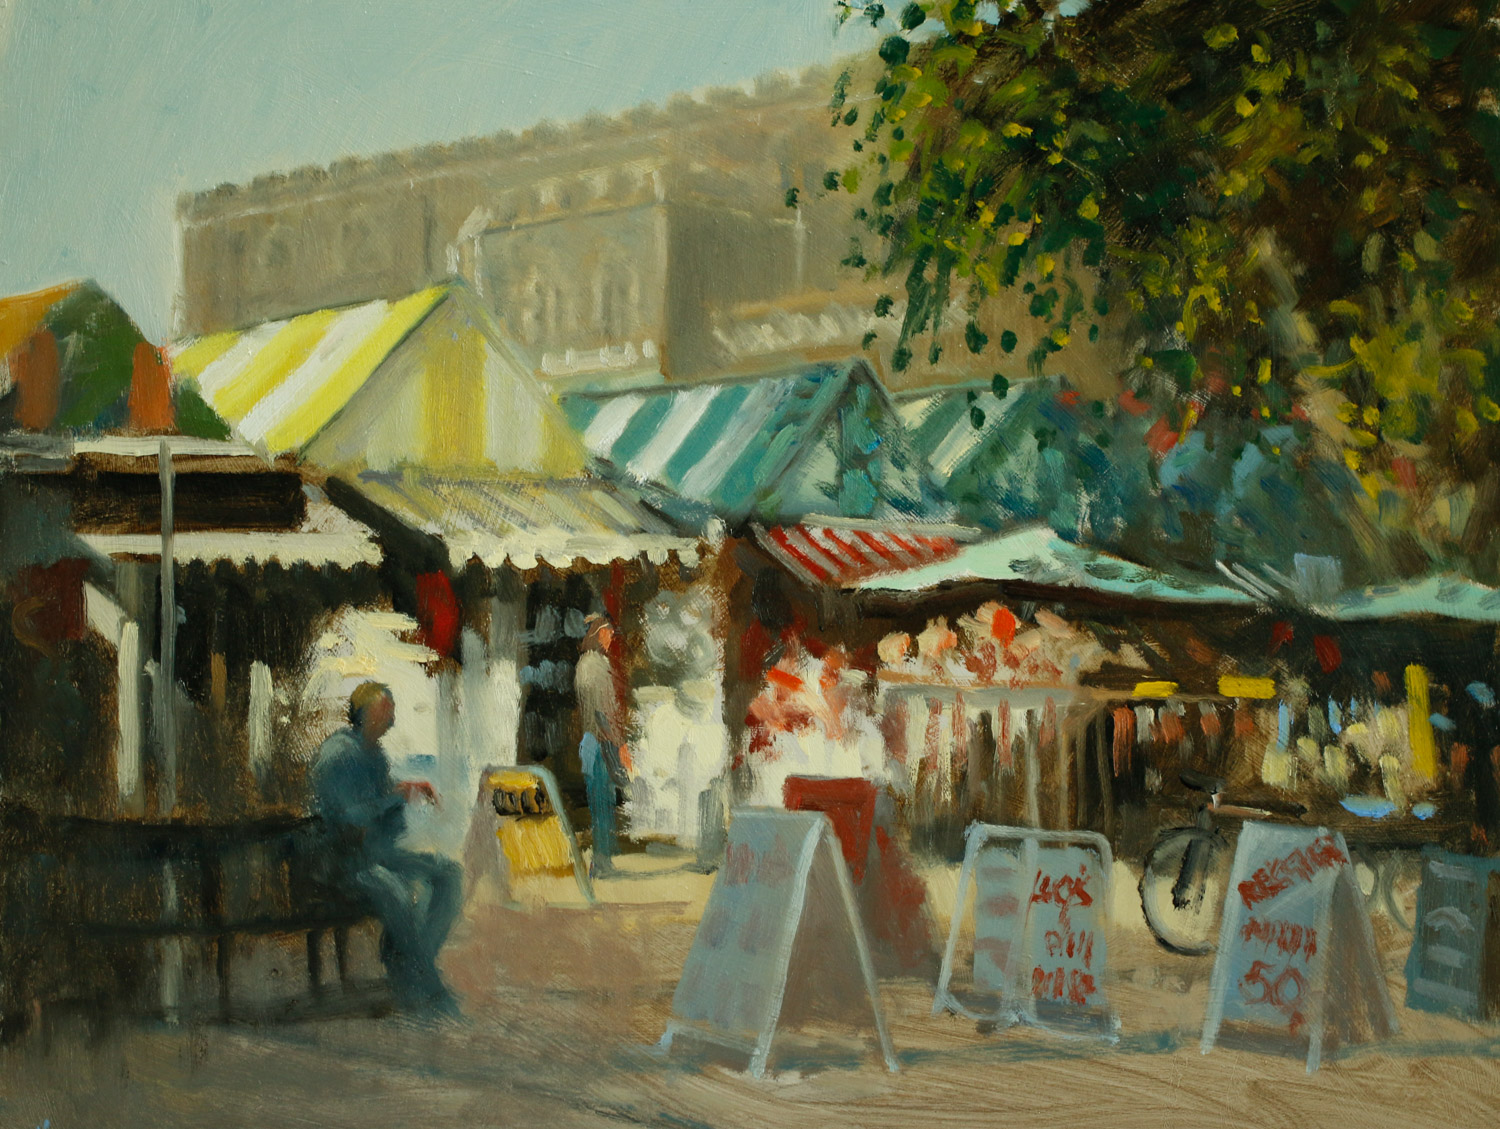 Artist Michael Richardson - Early Light Norwich Market 16x20 Oil on Board at Paint Out Norwich 2015 photo by Mark Ivan Benfield